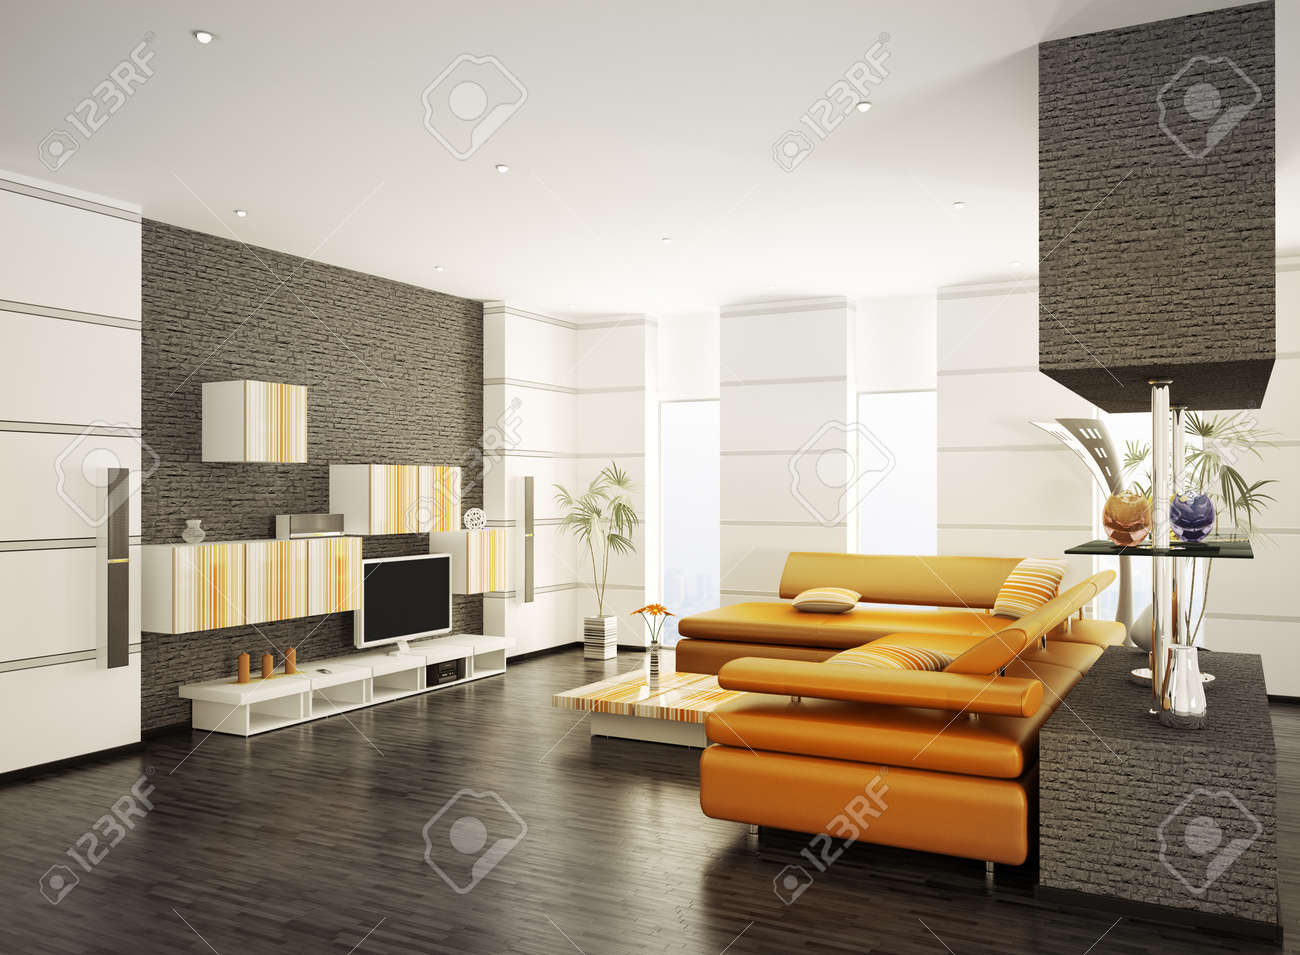 Modern Living Room With Orange Sofa And LCD Interior 3d Render Stock ...